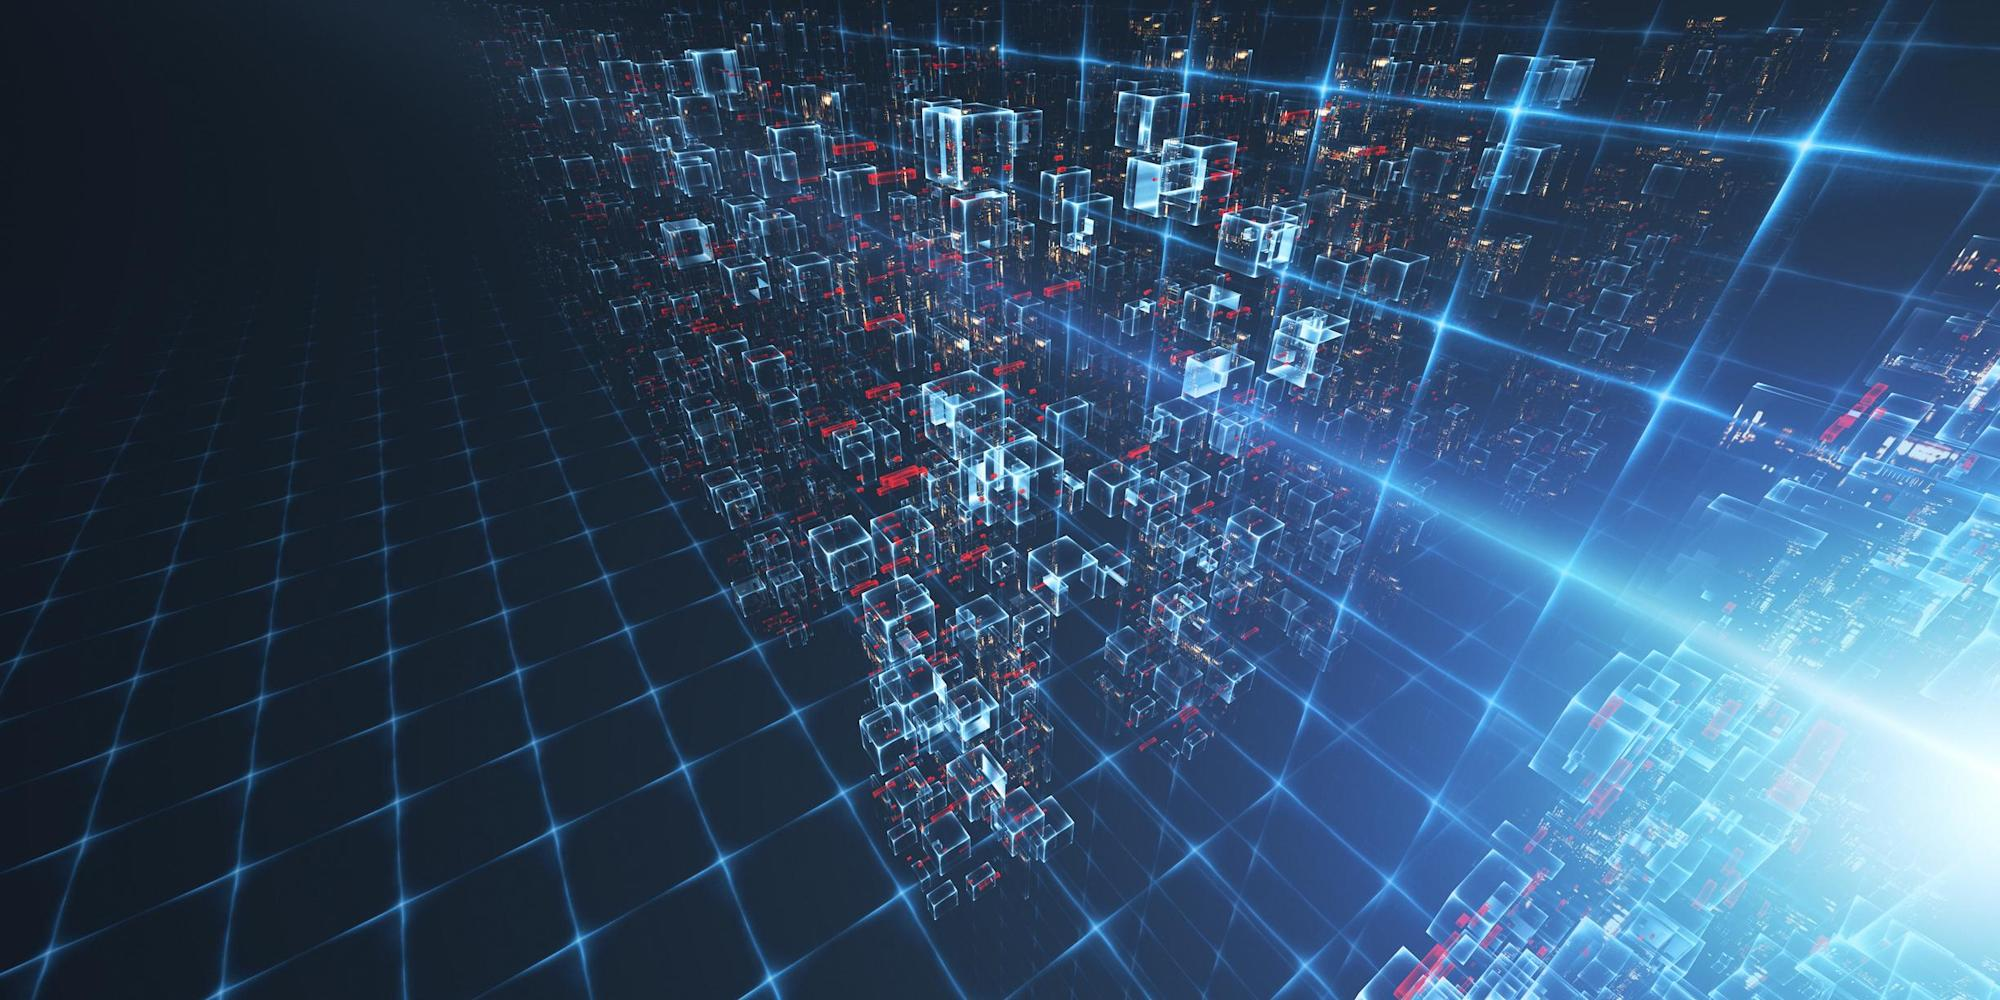 Pulumi launches version 3.0 of its infrastructure-as-code platform